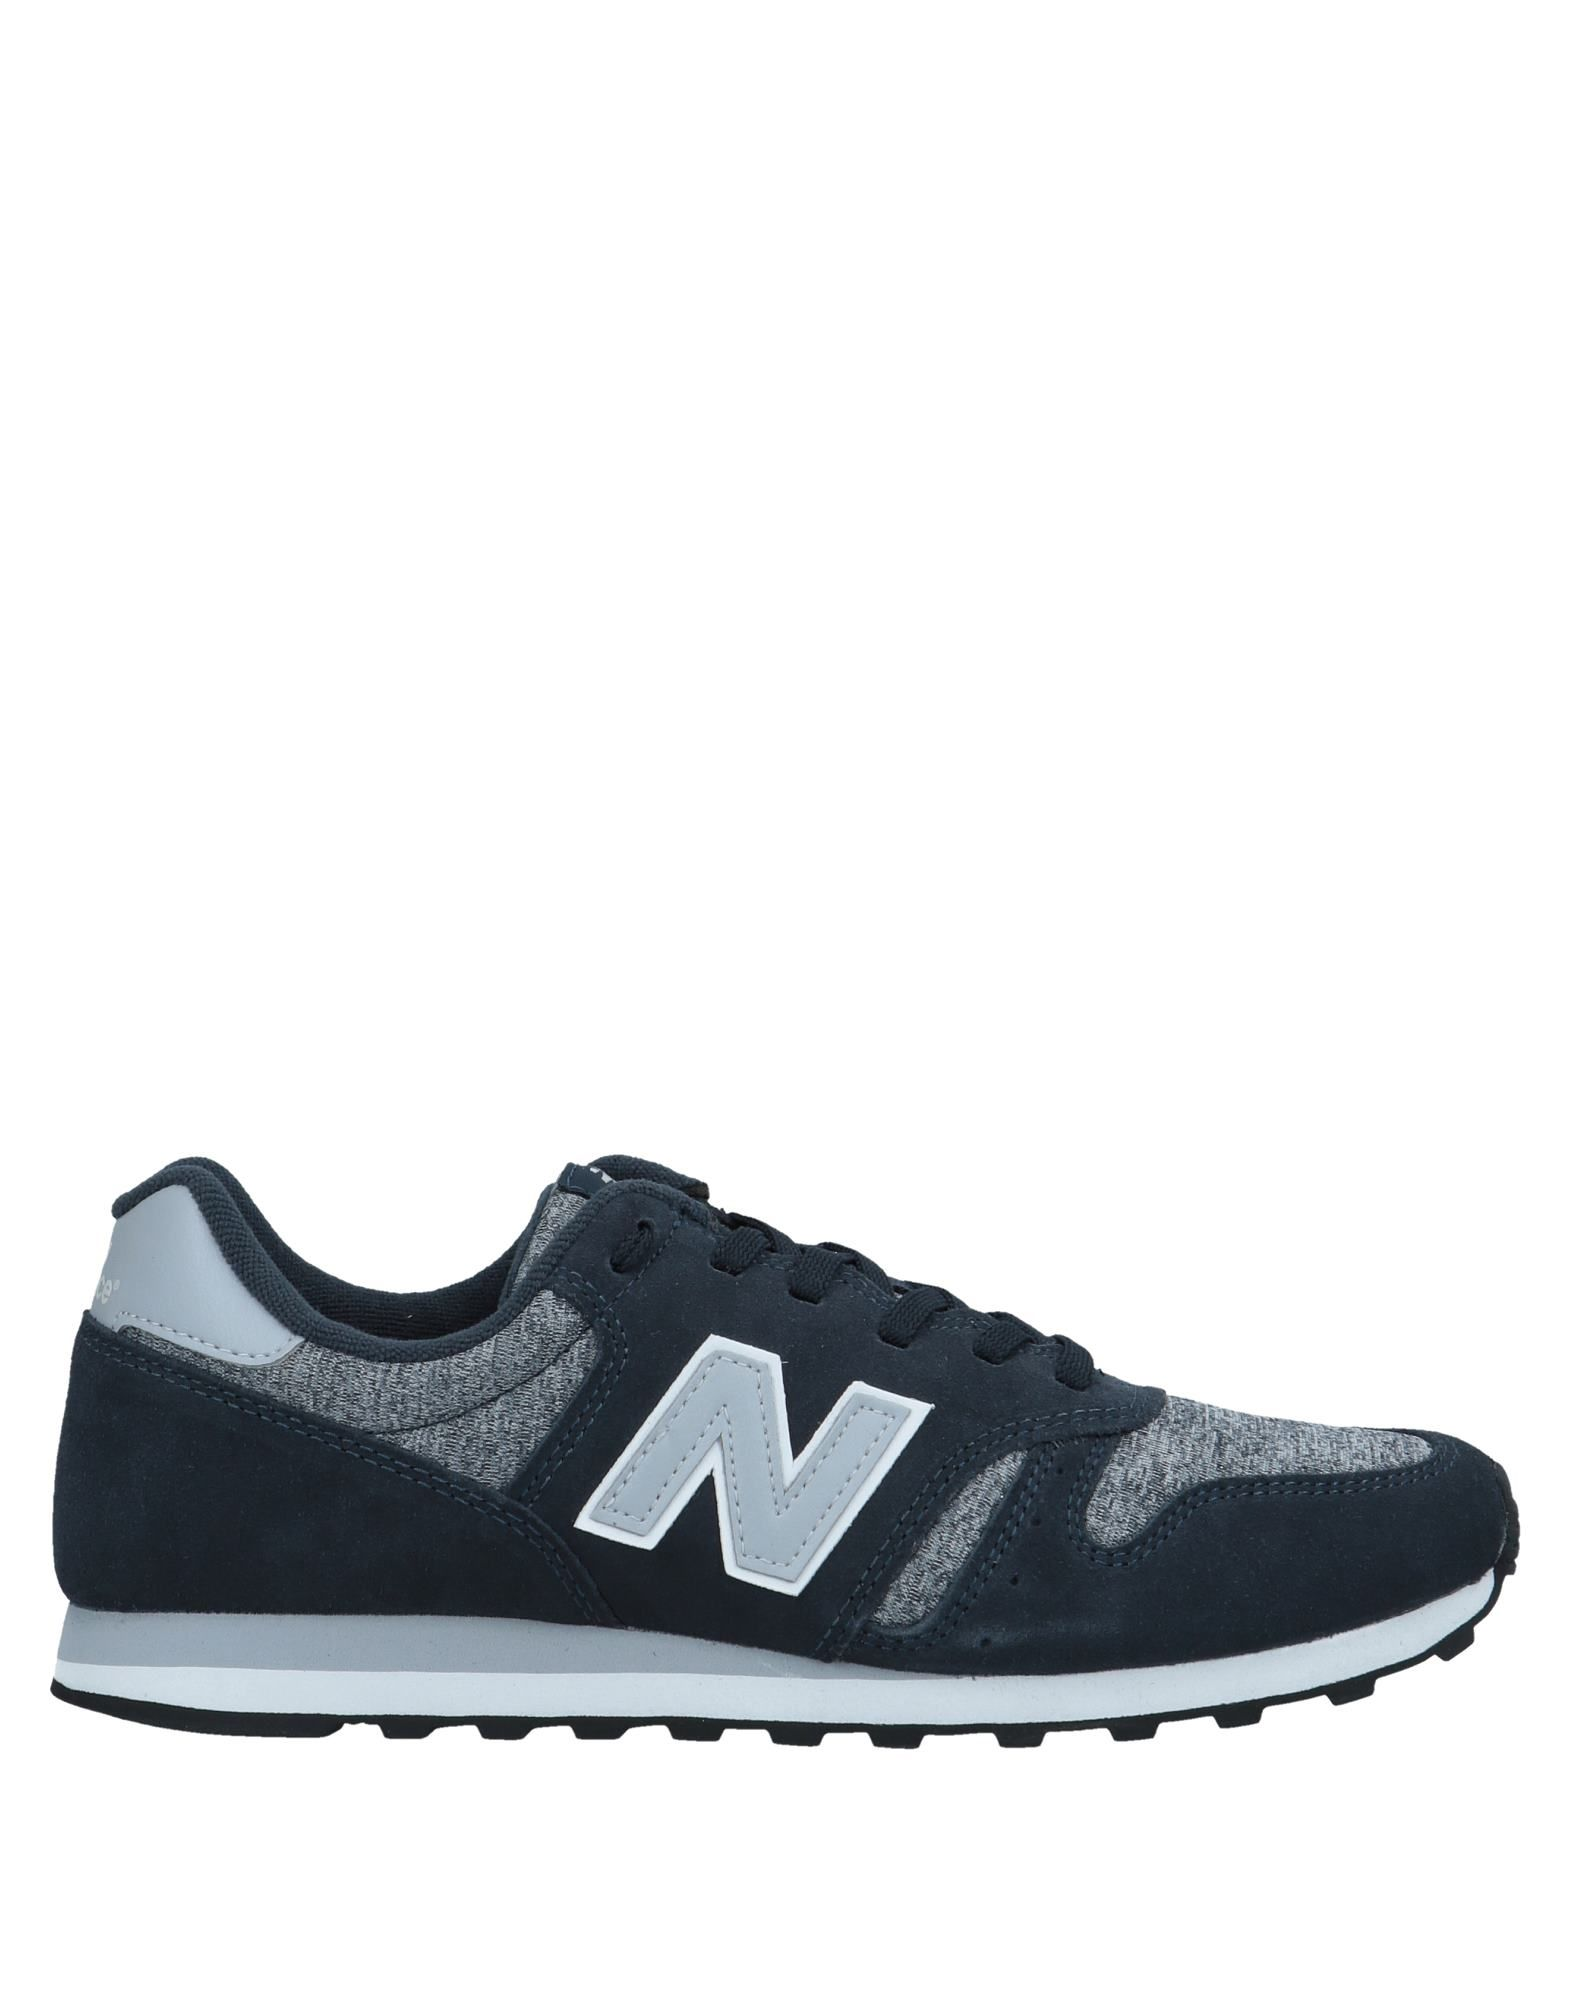 New Balance Sneakers - Men New Balance United Sneakers online on  United Balance Kingdom - 11570404EC 3ba833